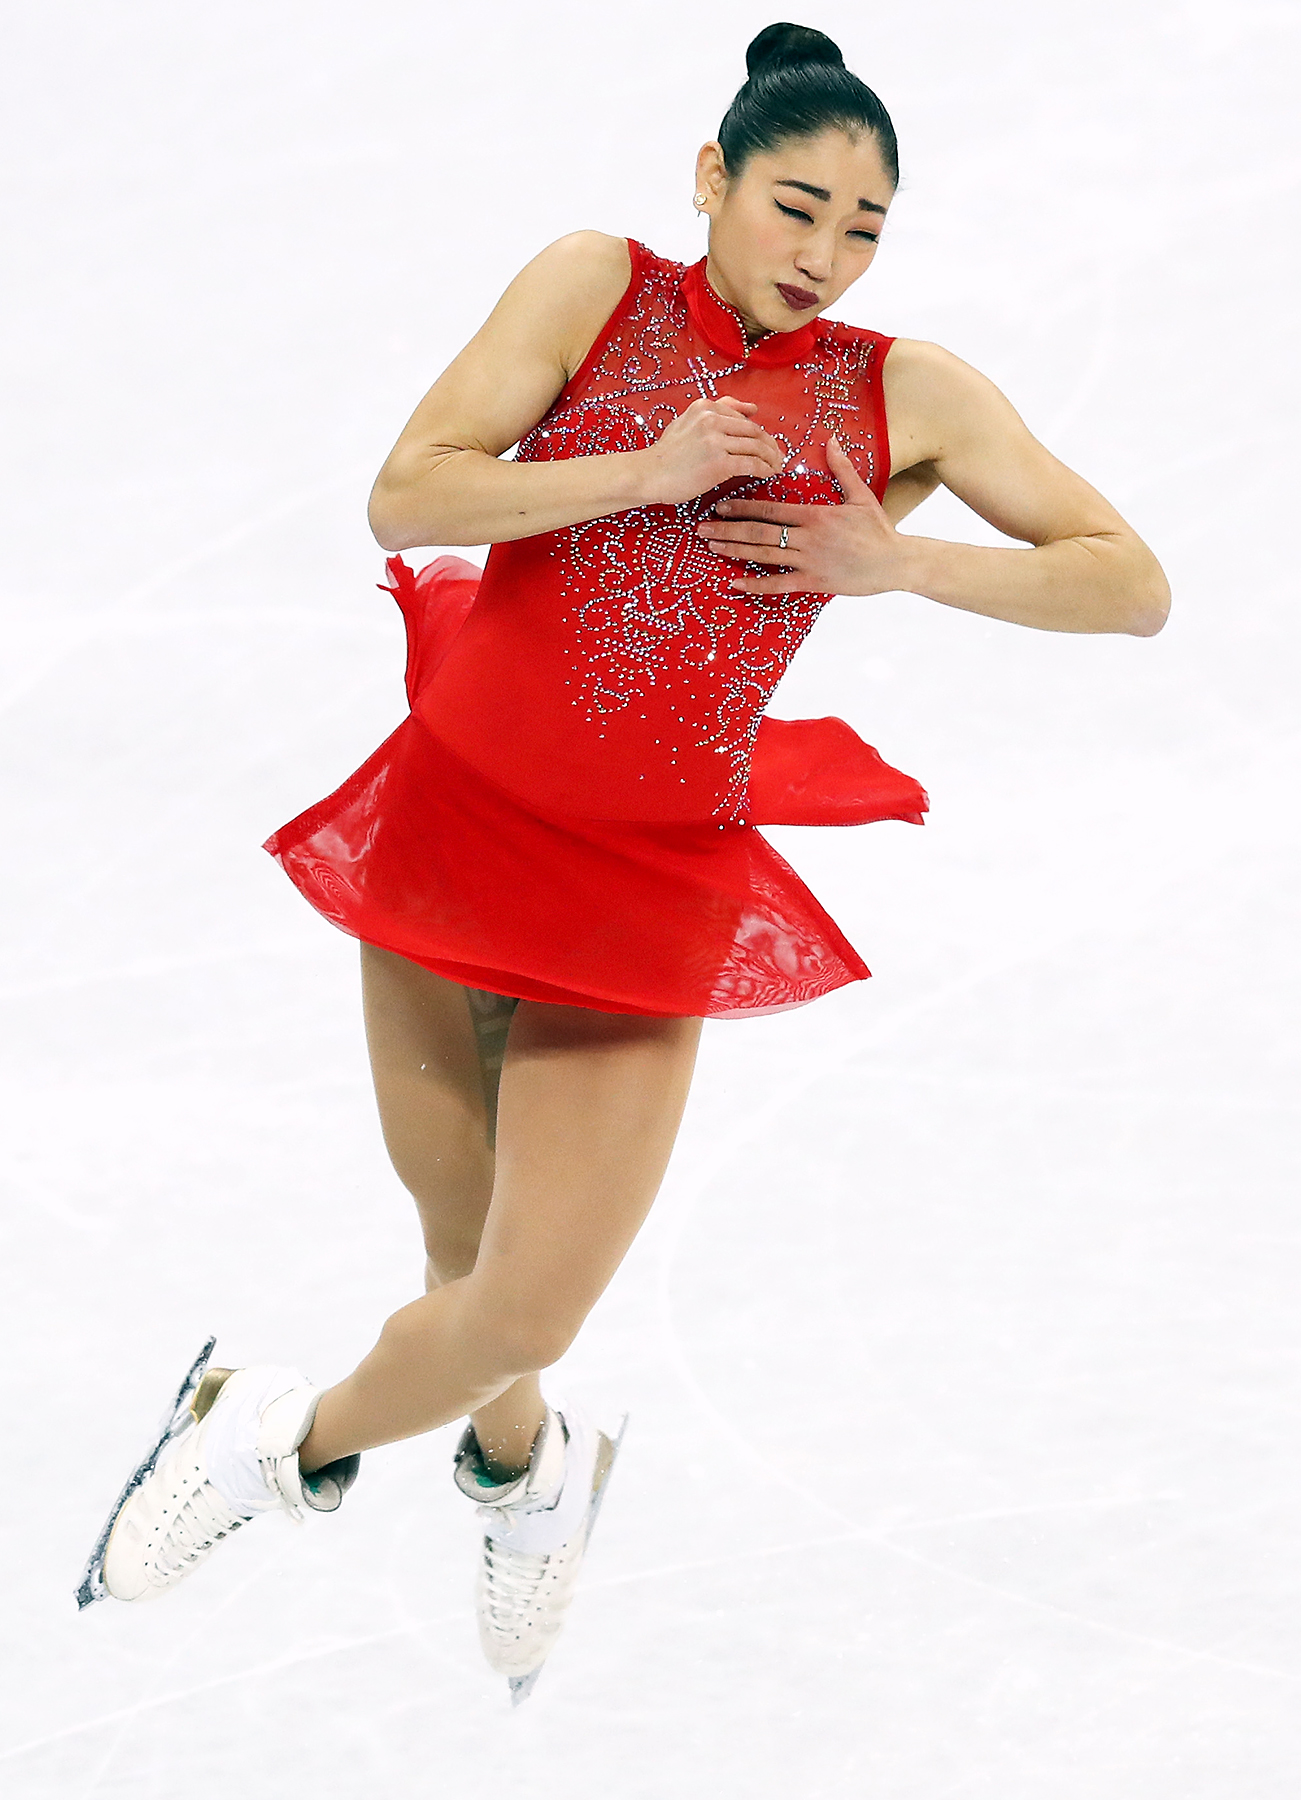 Mirai Nagusu First U.S. Woman to Land Triple Axel at Olympics